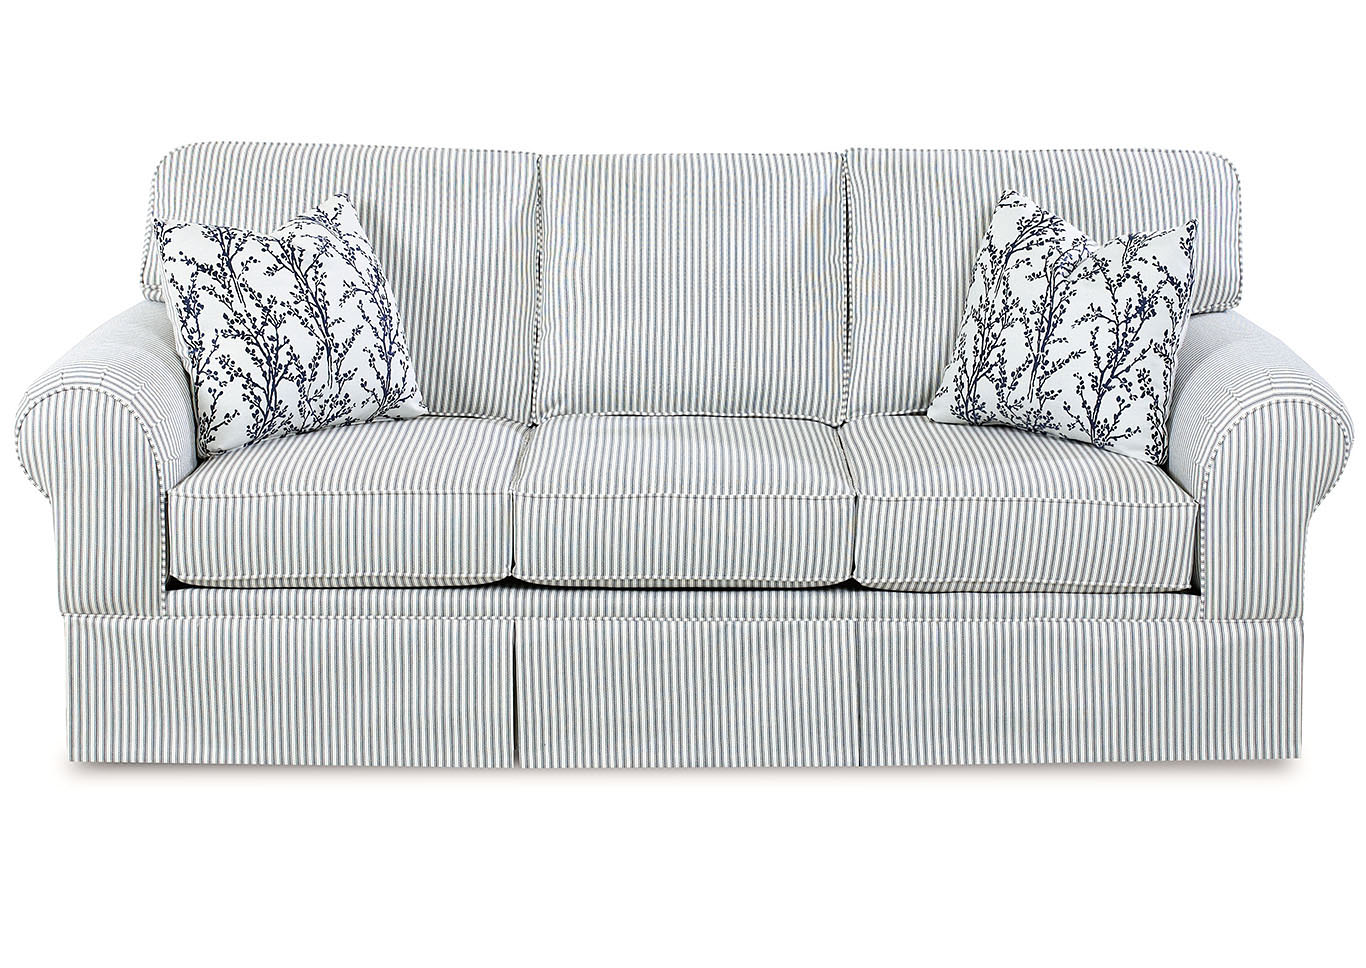 Woodwin Adrift Striped Stationary Fabric Sofa,Klaussner Home Furnishings